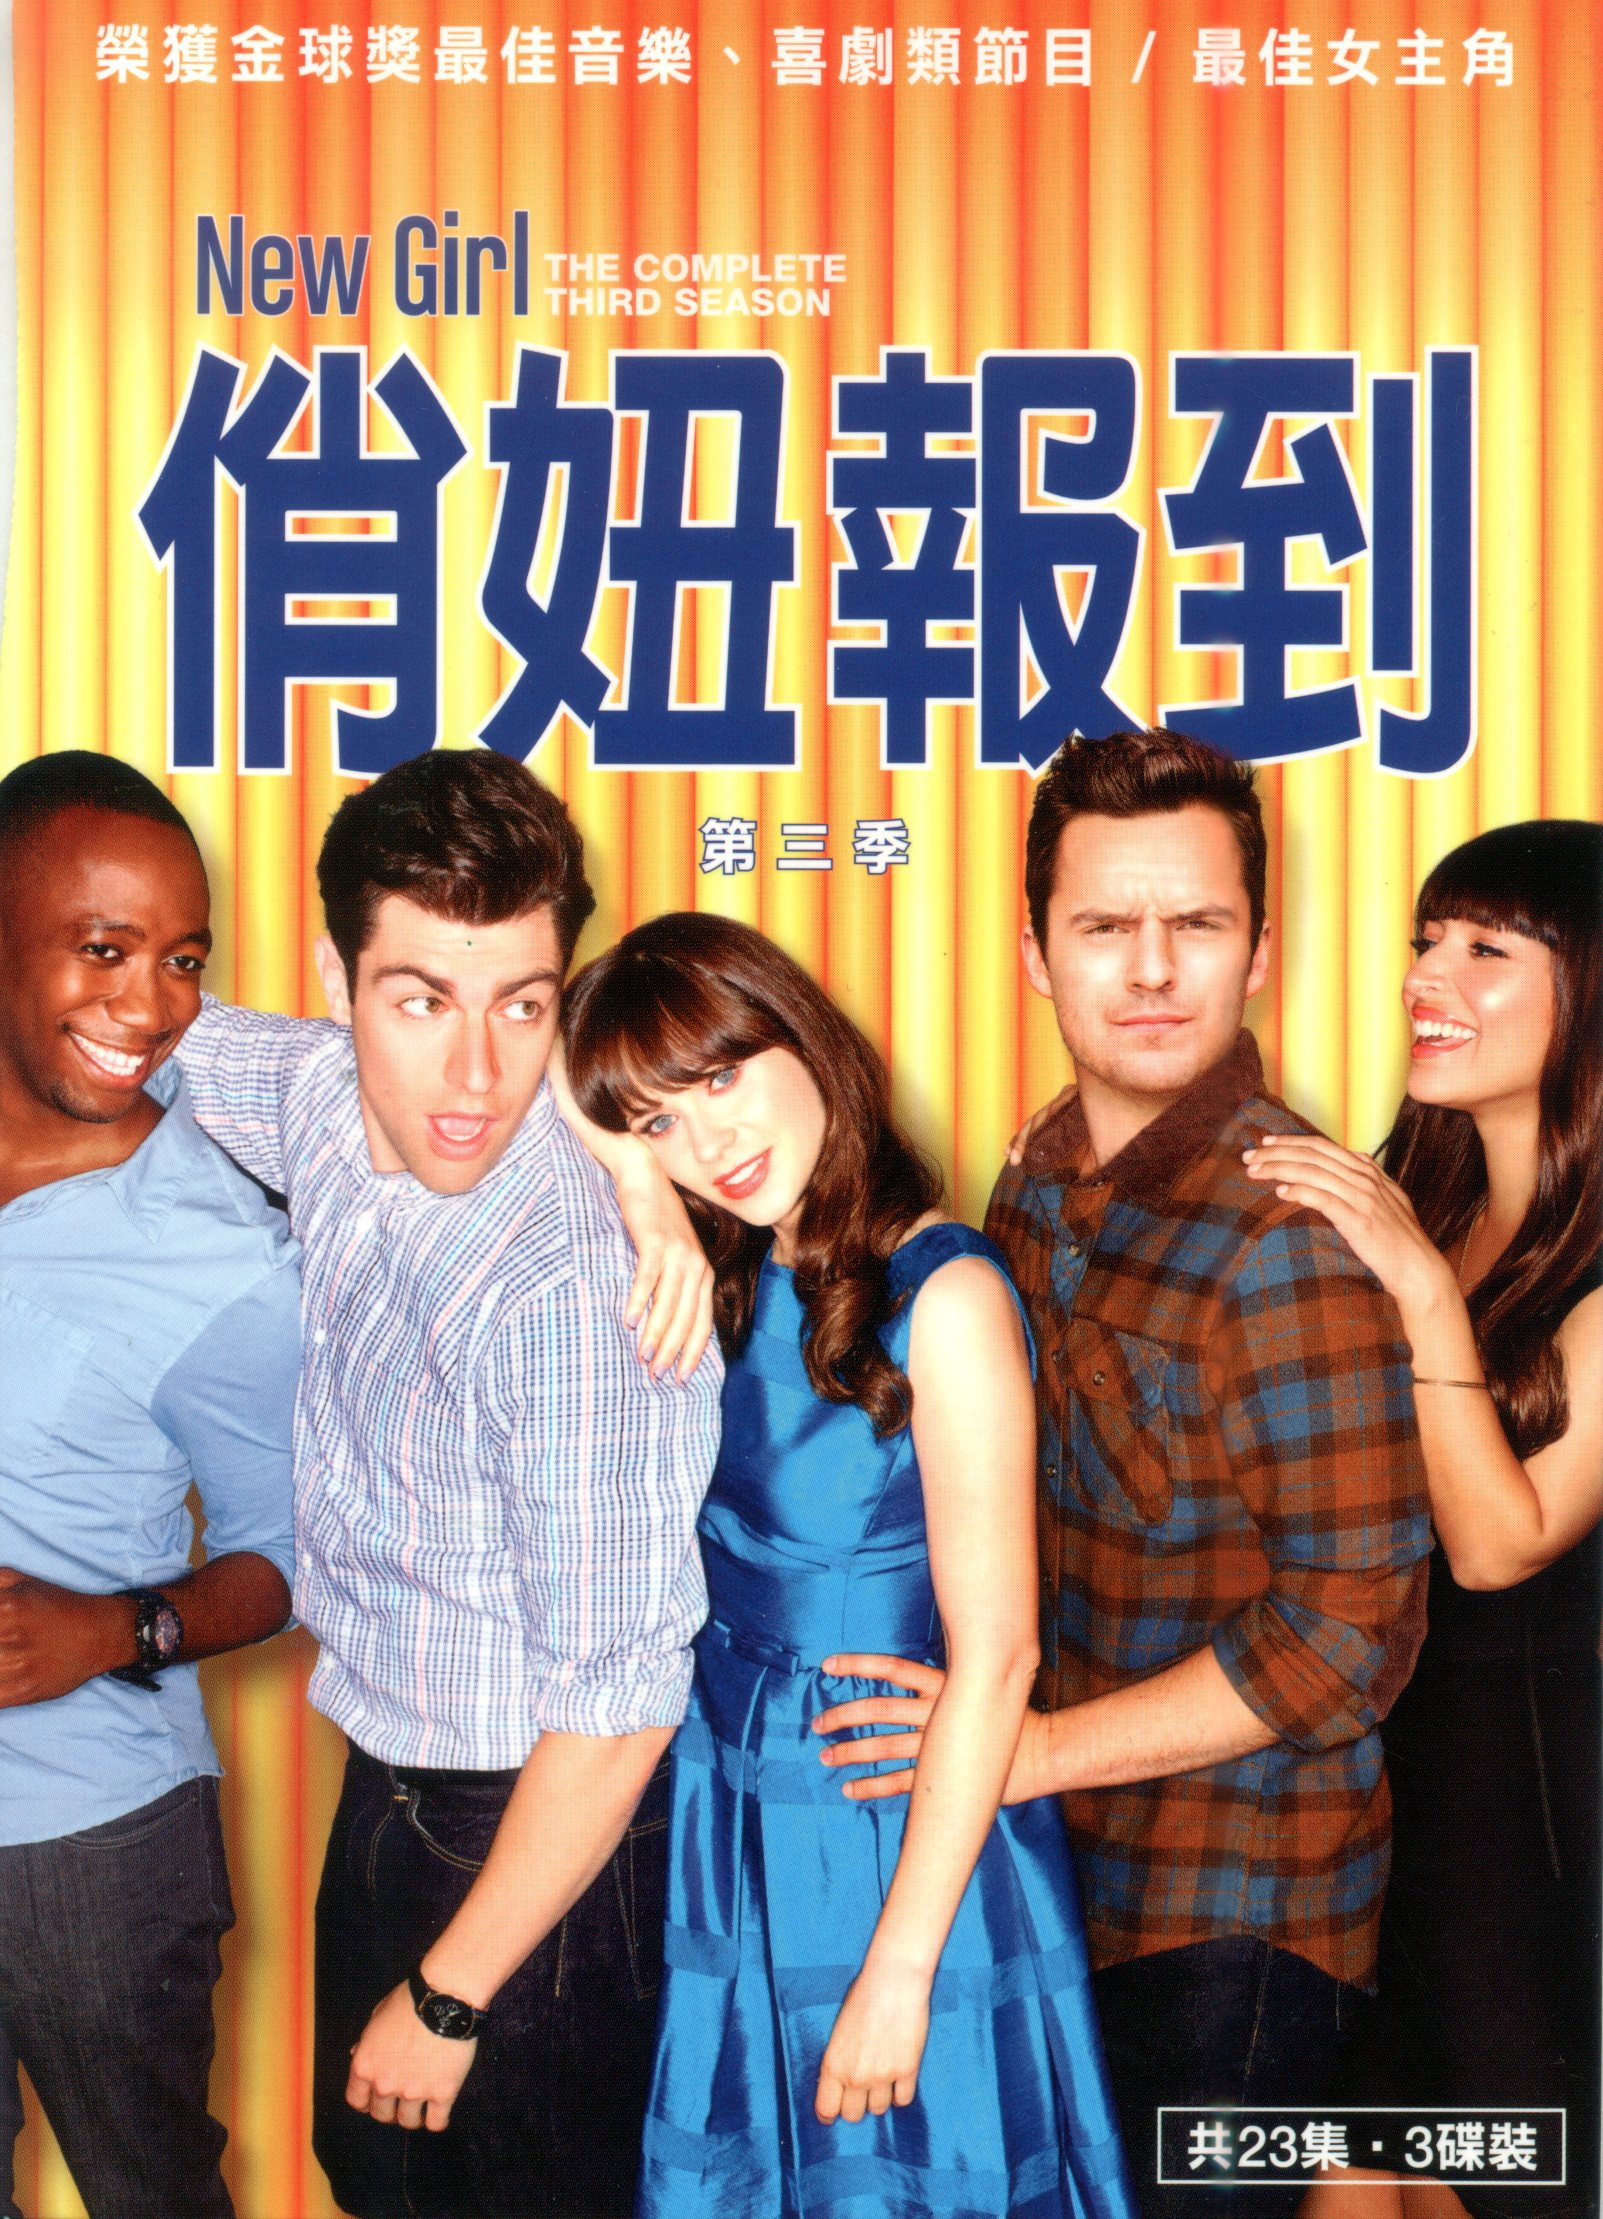 New girl(家用版) the complete third season = 俏妞報到. 第三季 /